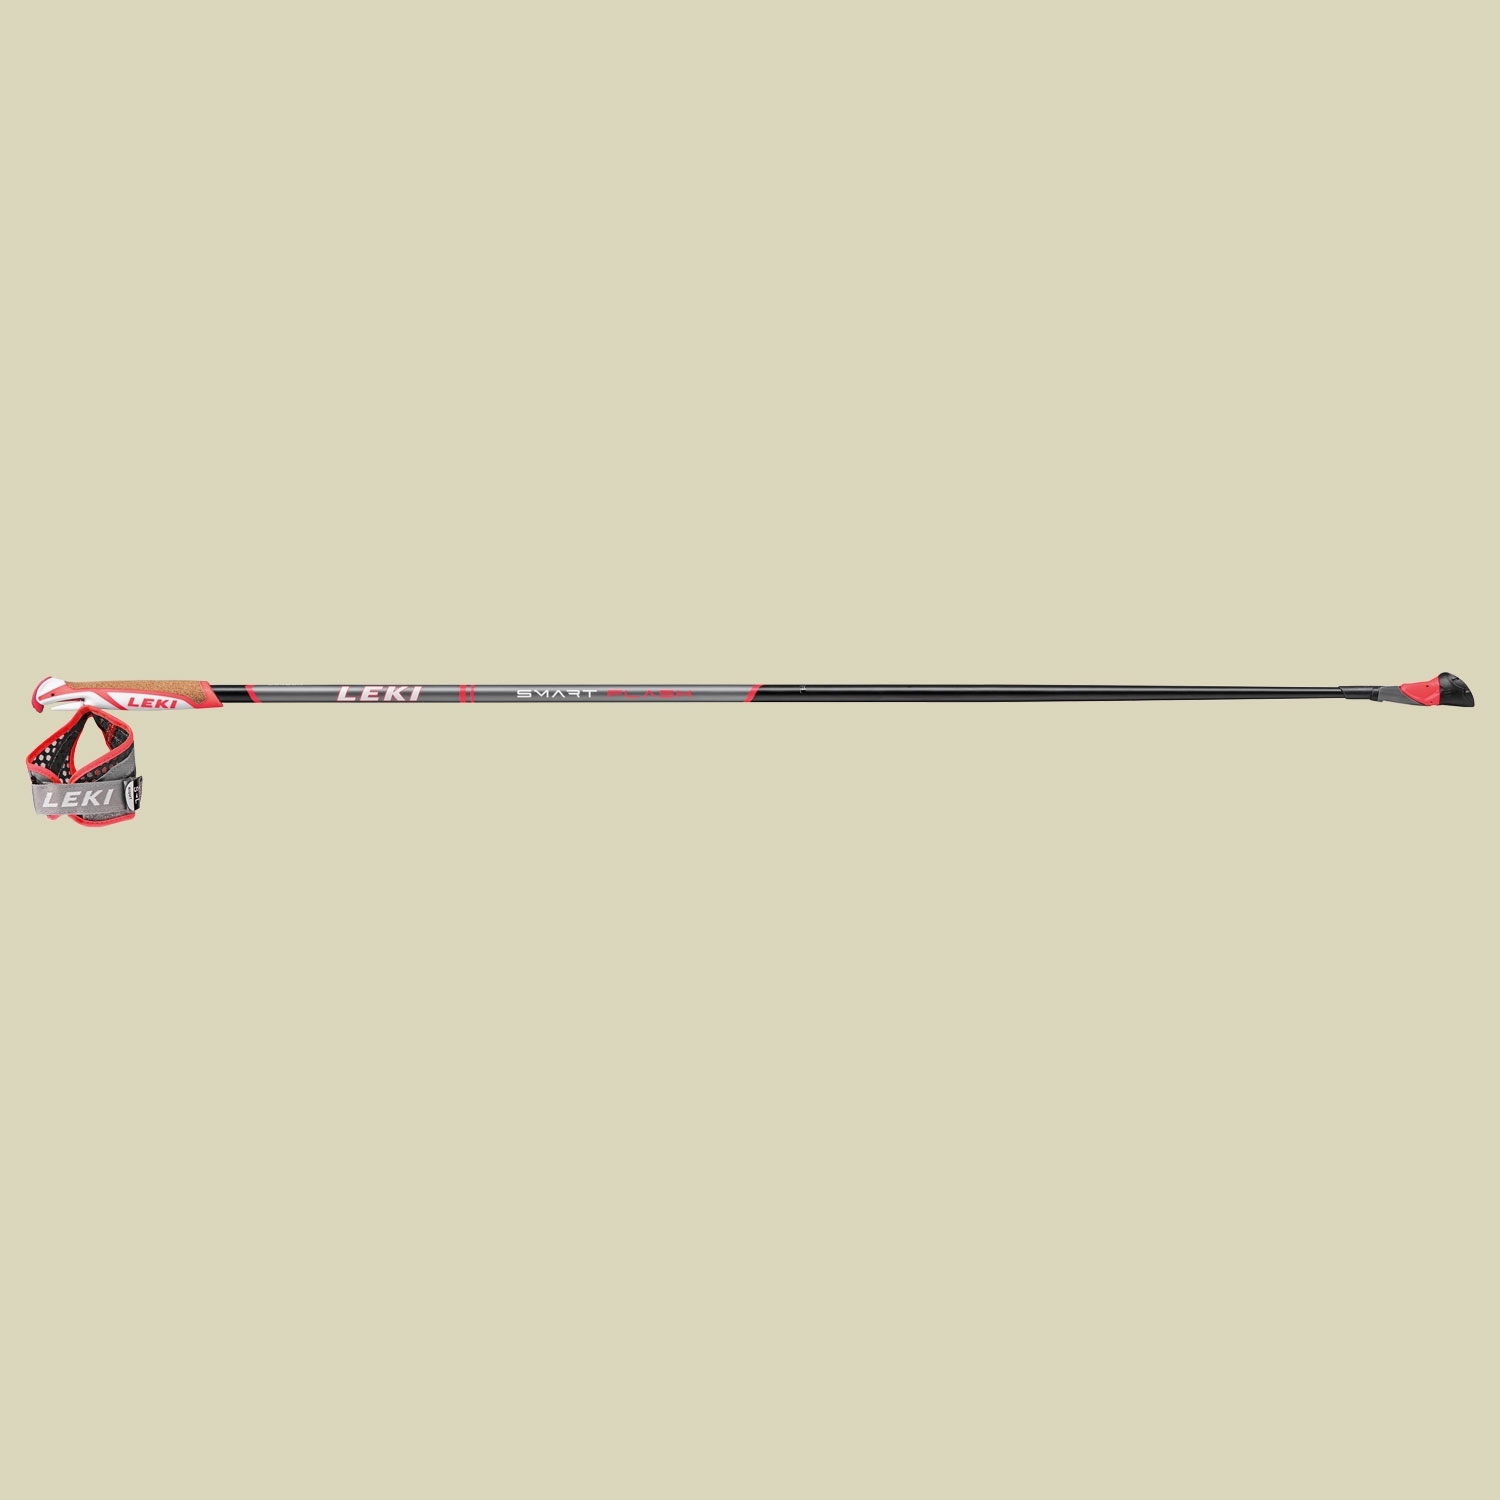 Leki Smart Flash Nordic Walking Stock Länge 115 cm black-anthracite-white-red von Leki